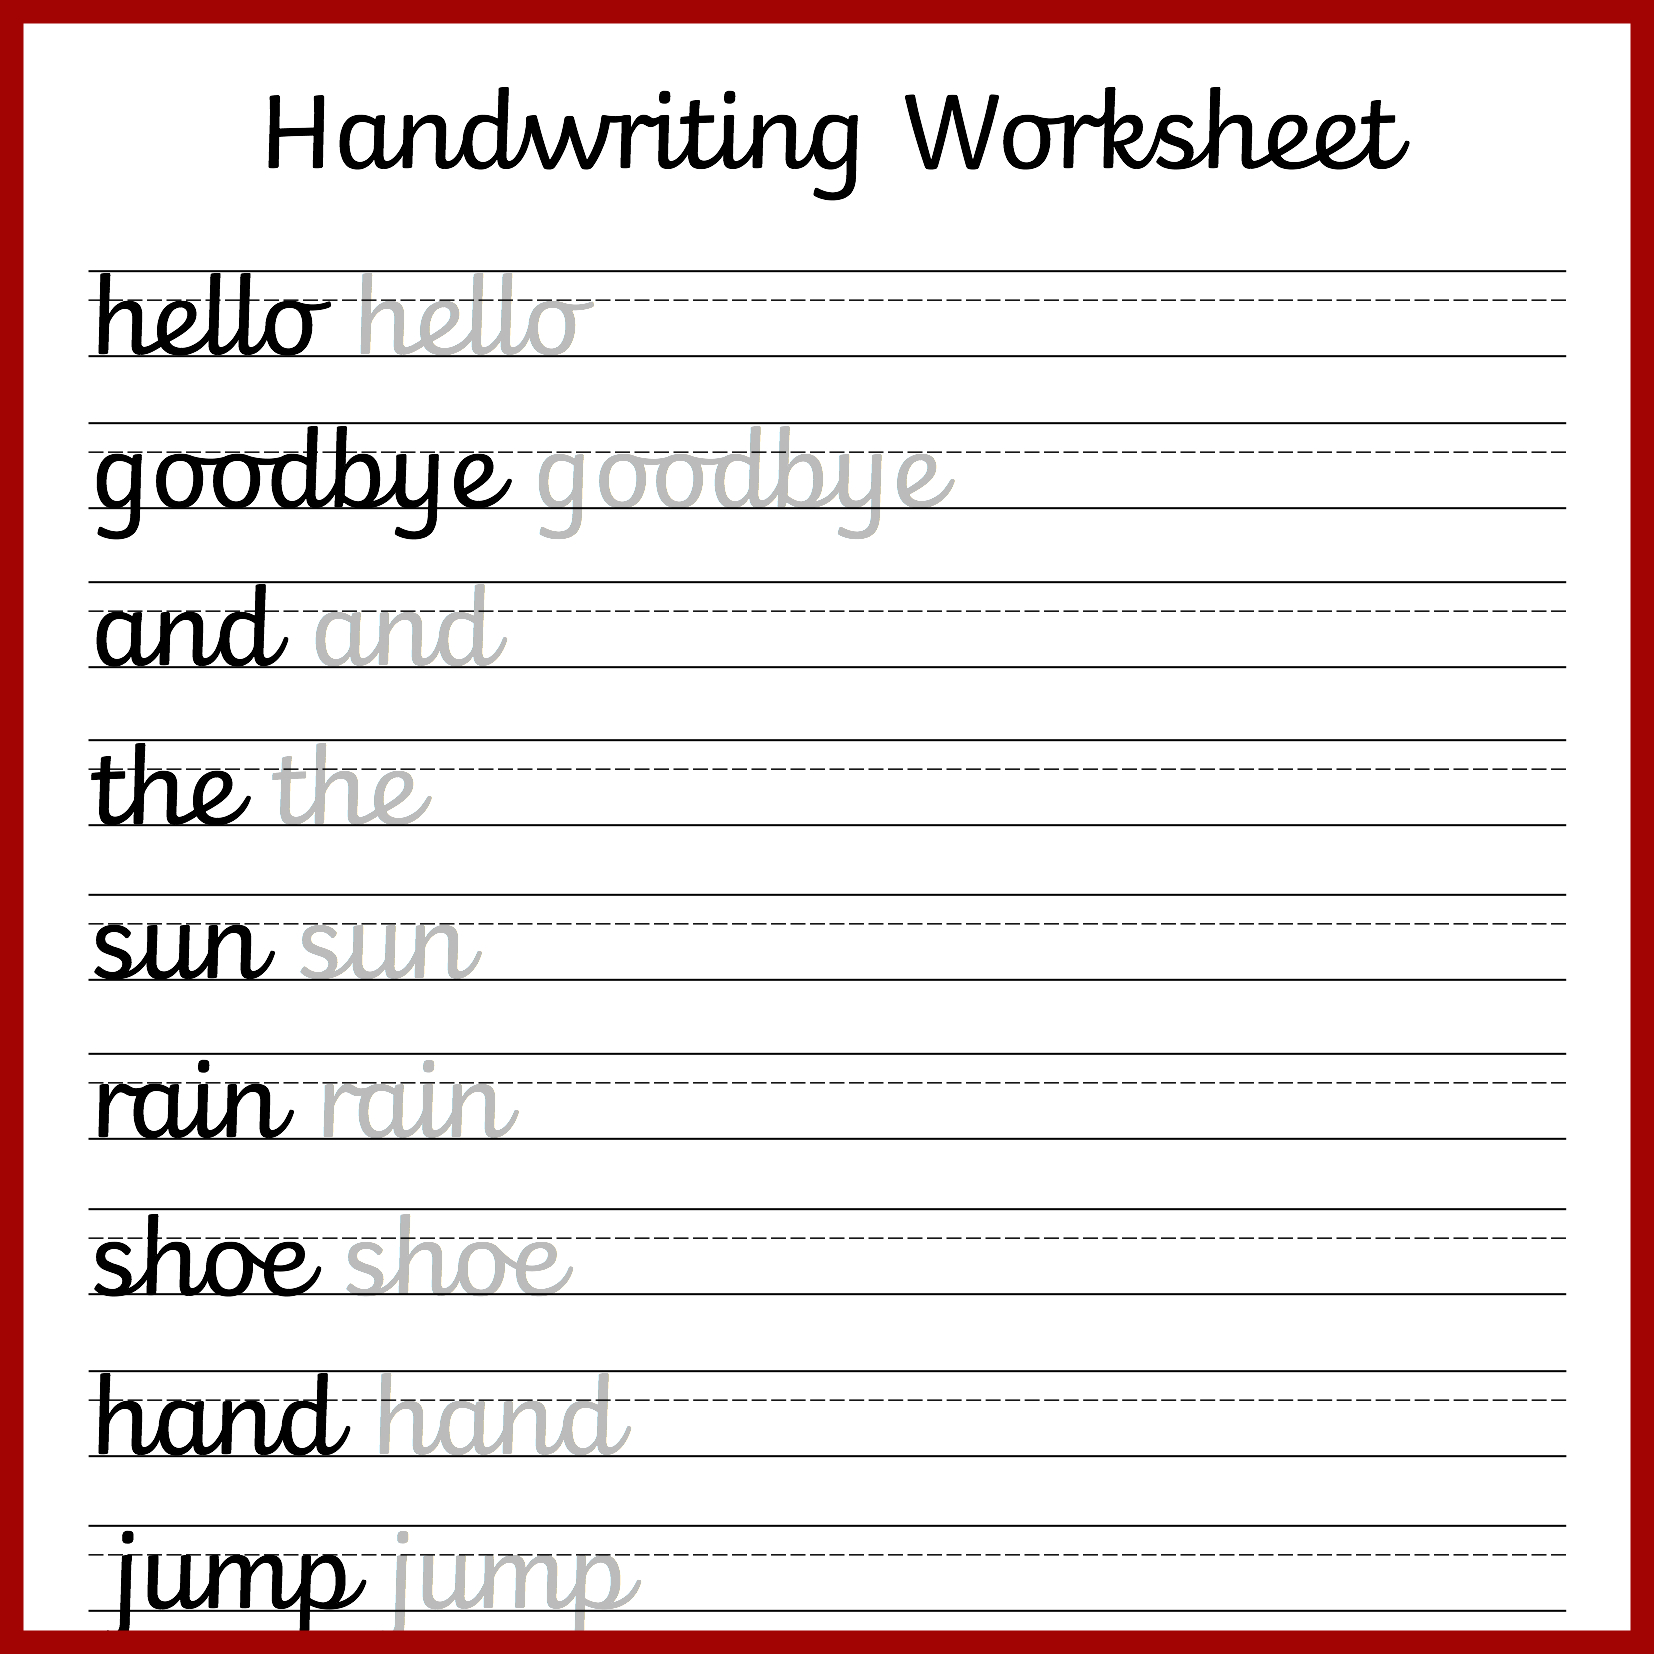 Cursive Handwriting Worksheets – Free Printable! ⋆ Mama Geek - Free Printable Handwriting Worksheets